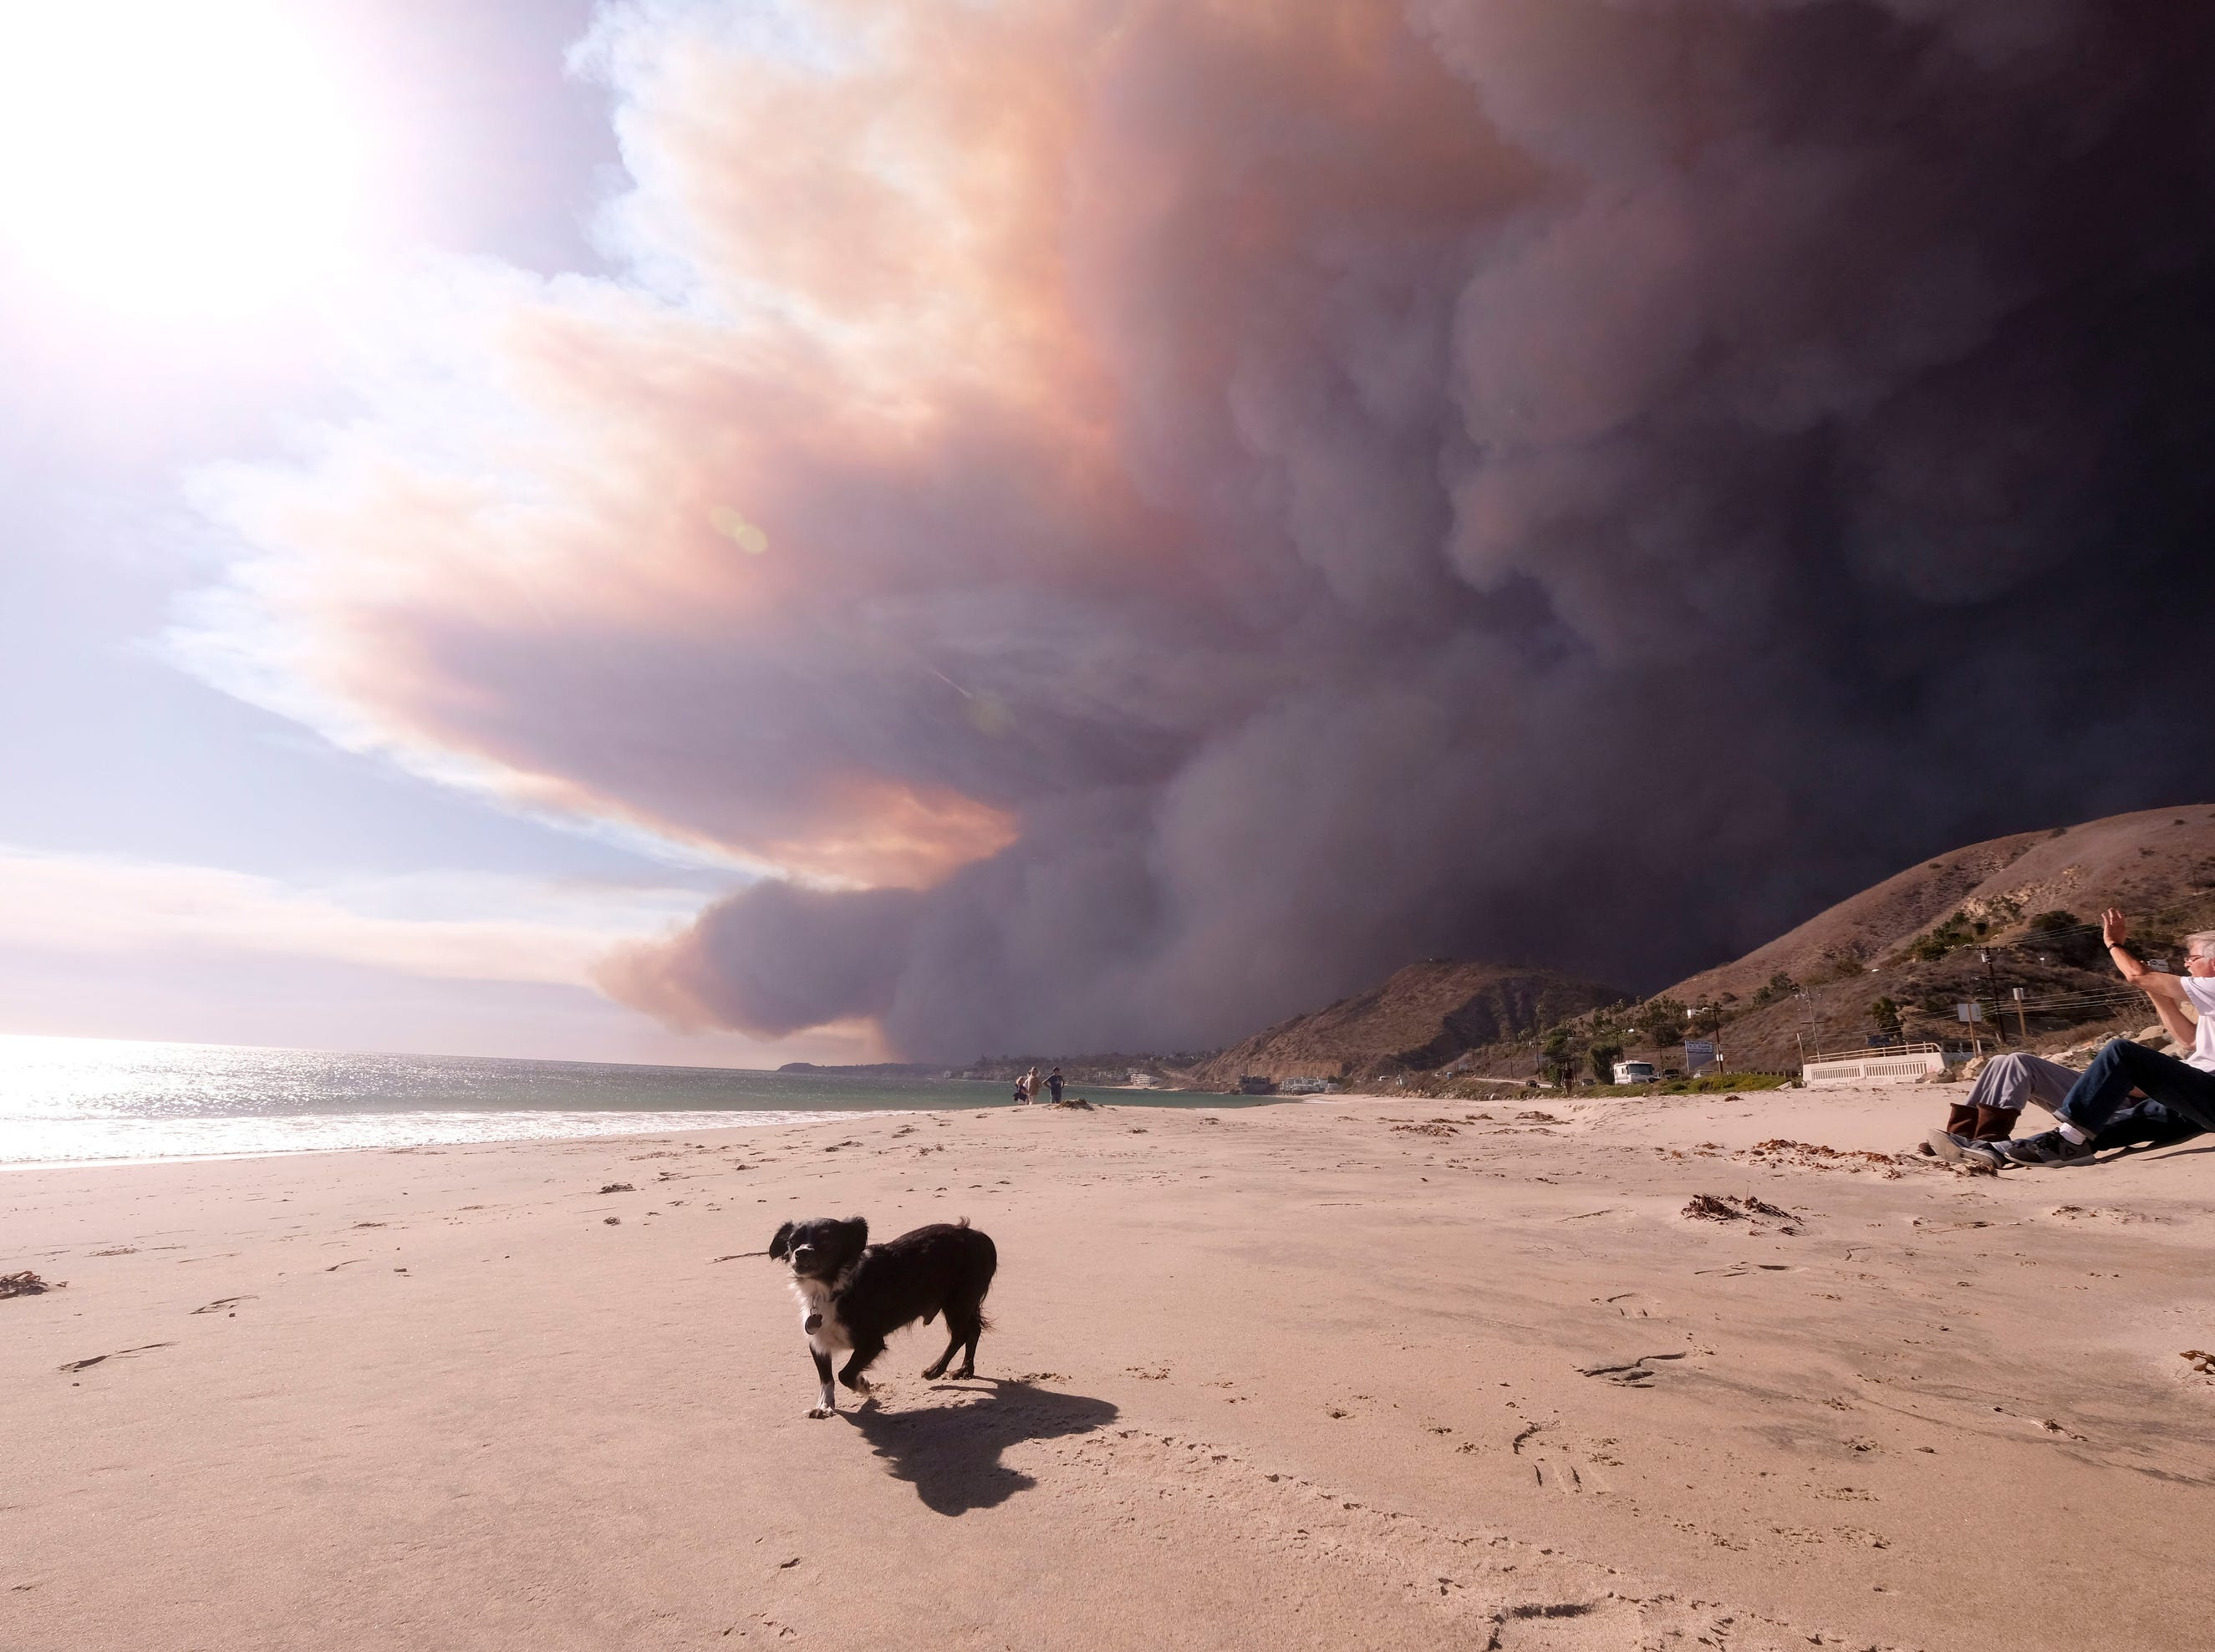 People enjoy the day in the beach as the heavy smoke rises over the the Santa Monica Mountains during the Woolsey fire in Malibu, Calif., on  Friday.